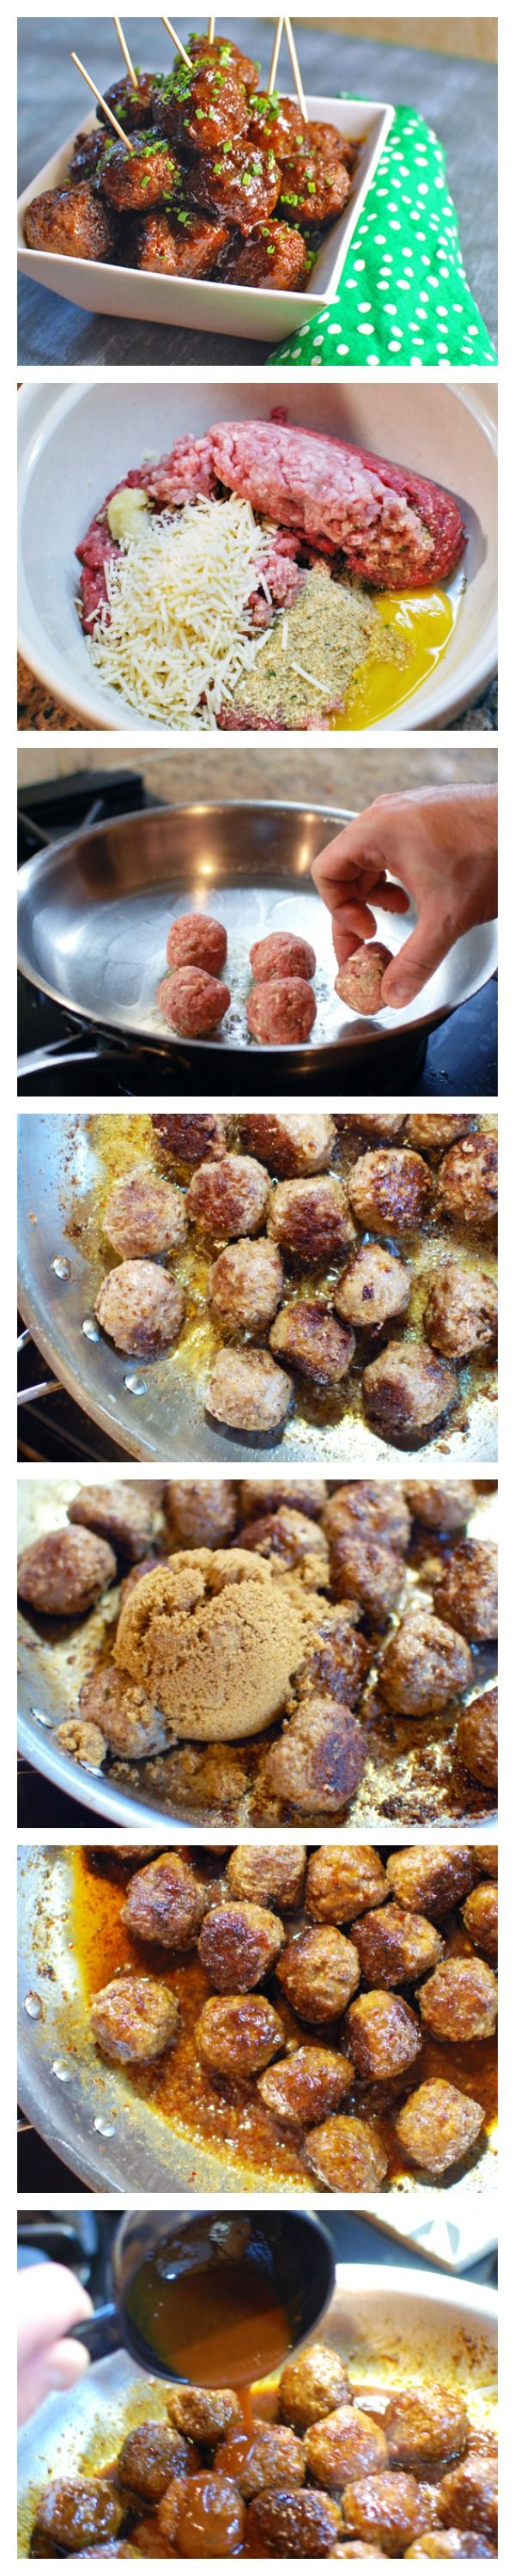 Sticky glazed meatballs that are sweet, savory and just a little spicy. A perfect football party treat!